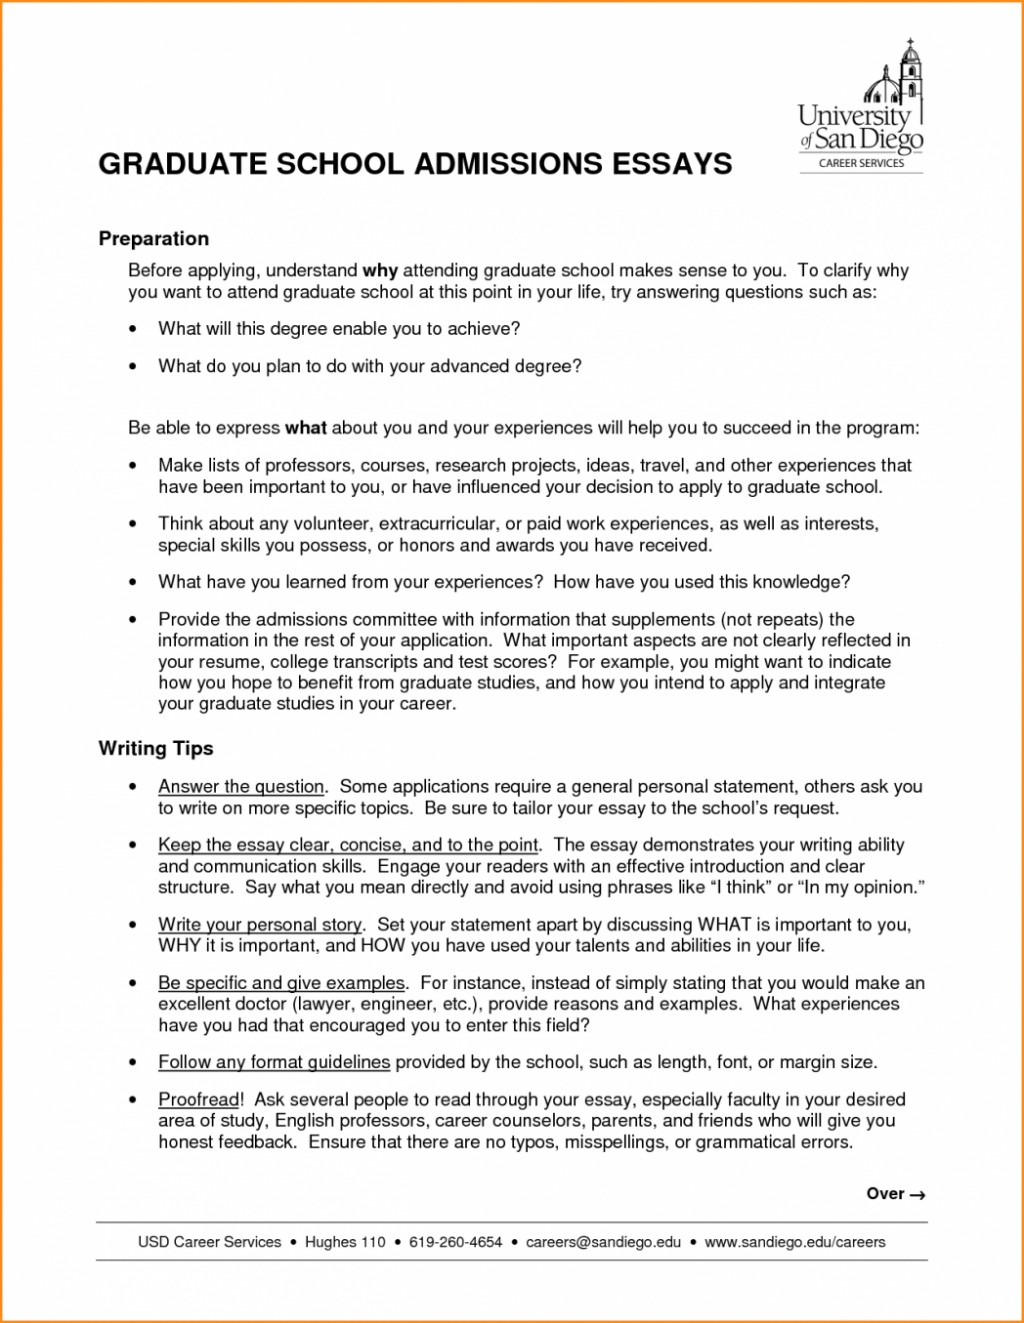 015 Sample High School Admission Essays Essay Example Admissions Catholic Samples Free Unusual Large